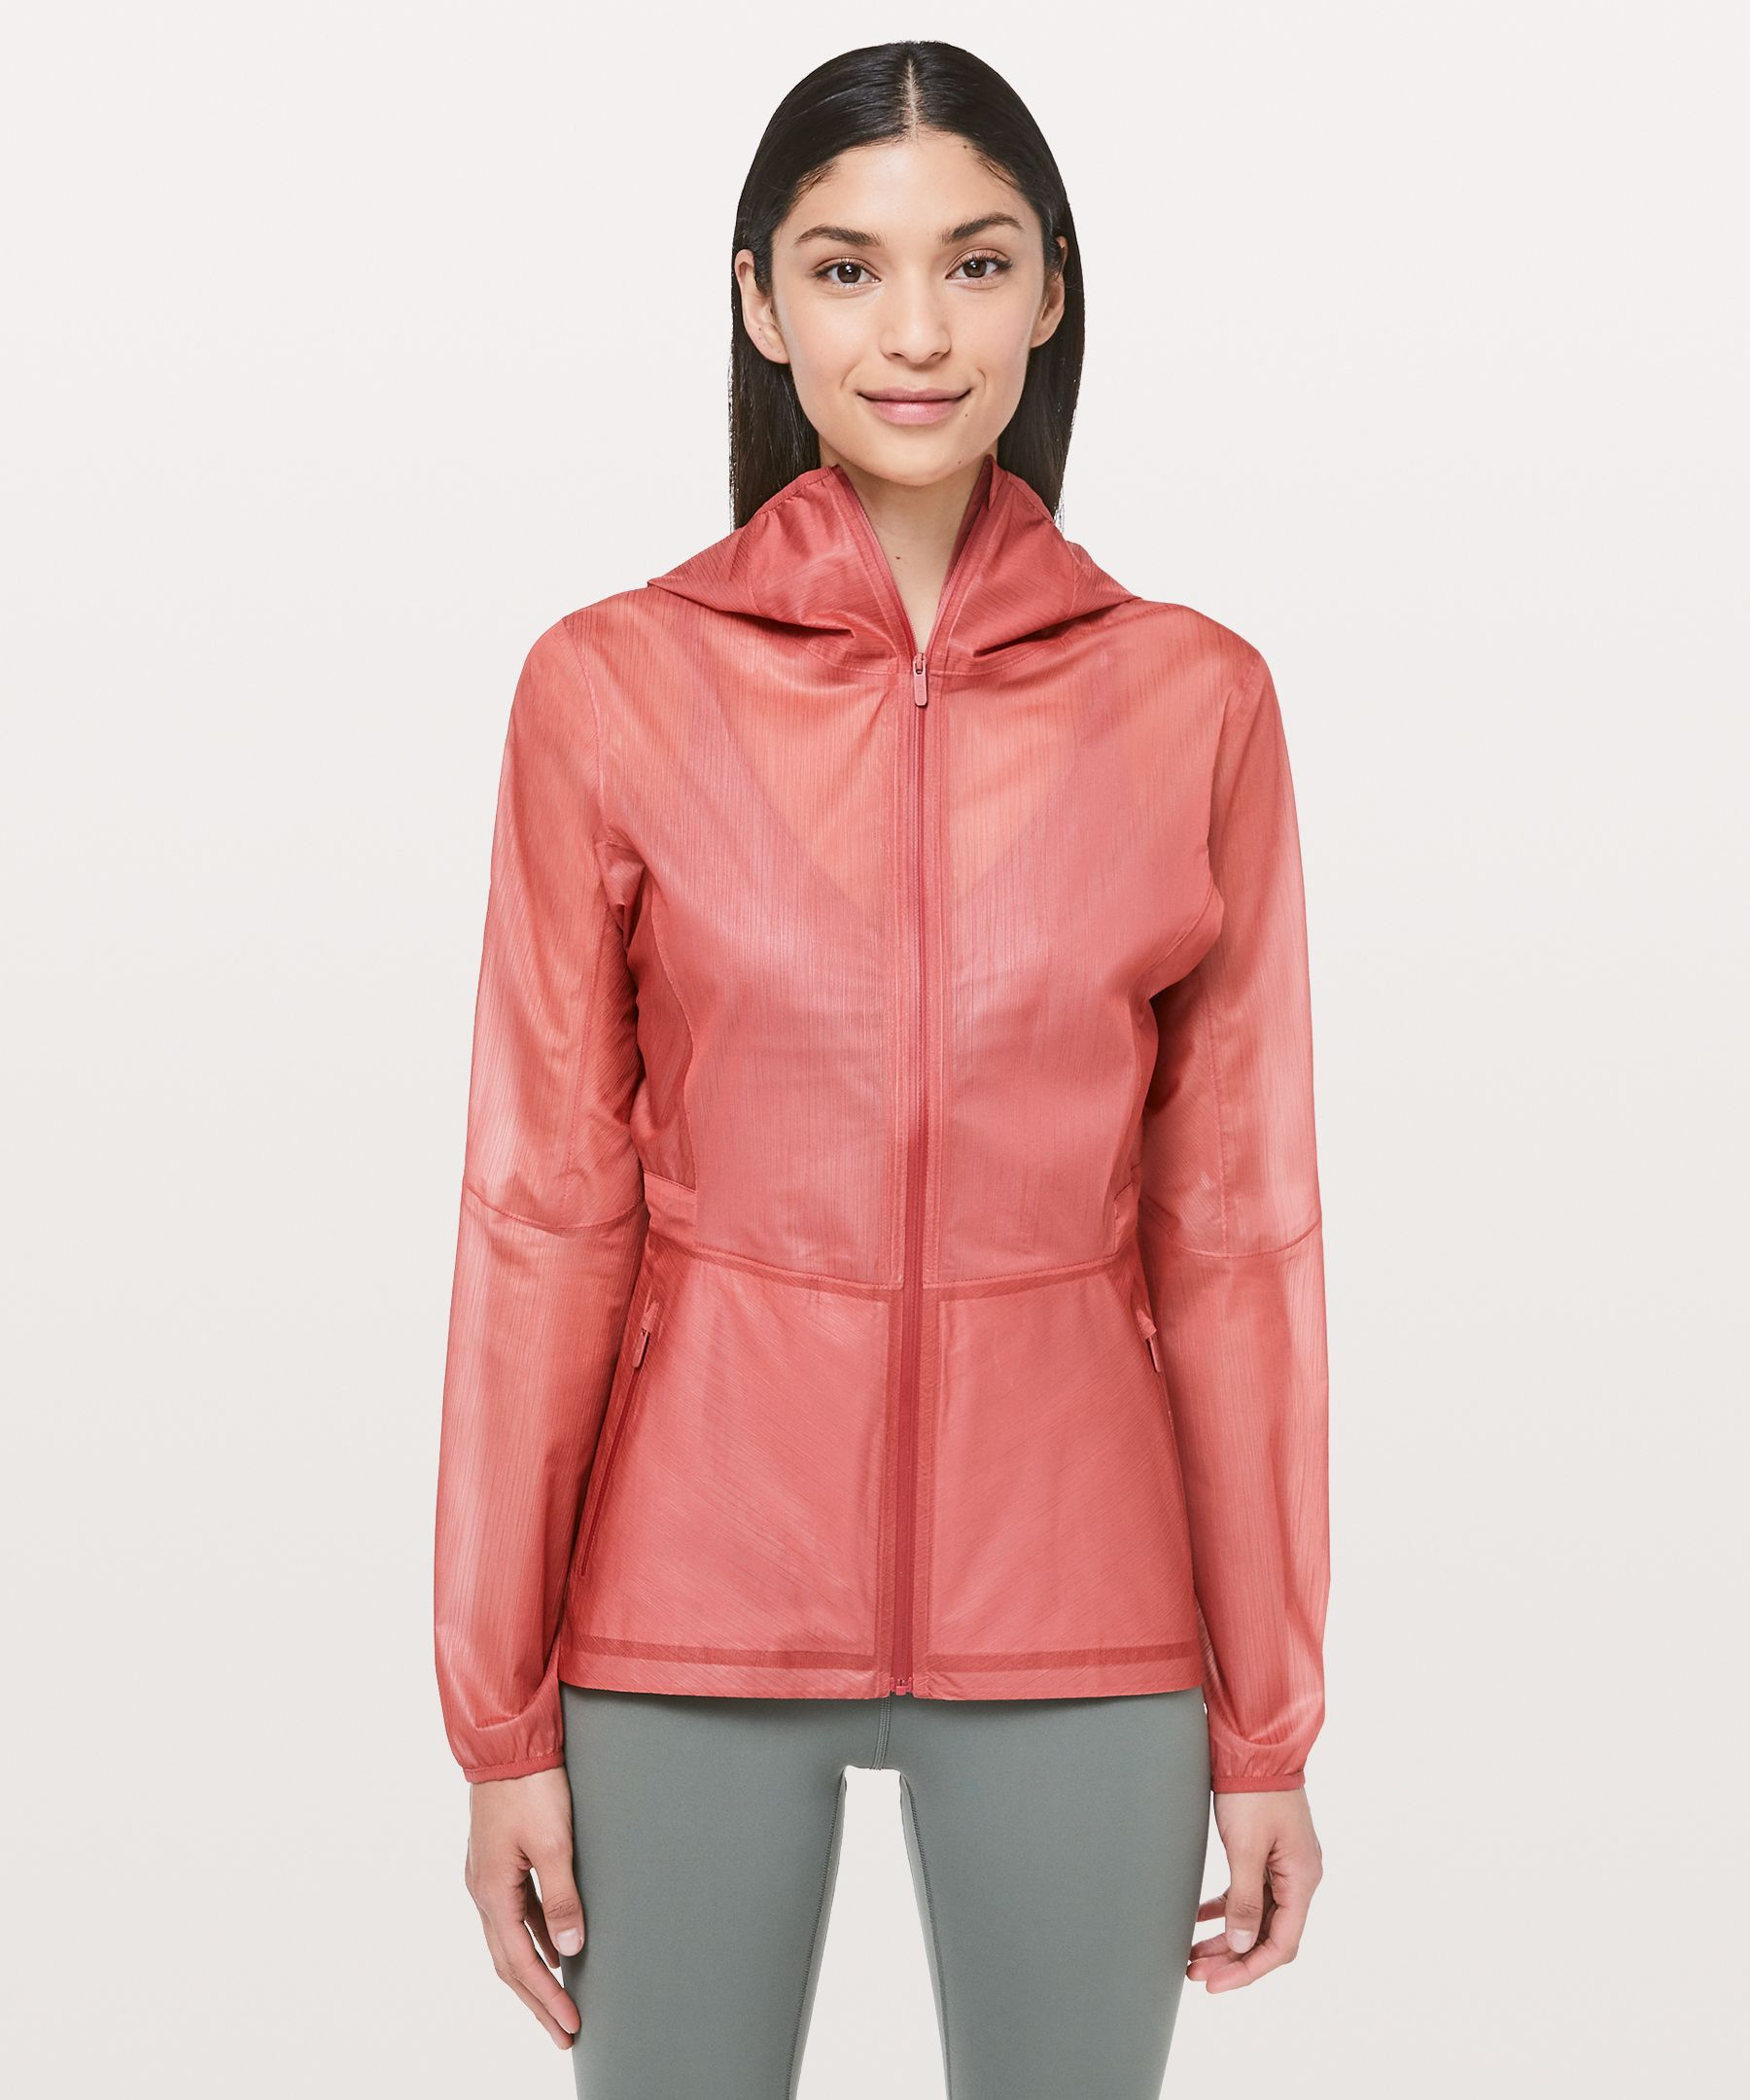 Embrace uncertain weather in  this lightweight jacket.  Translucent and textured, the  material looks like chiffon  and performs like a technical  fabric, so you can take on  light rain in style.